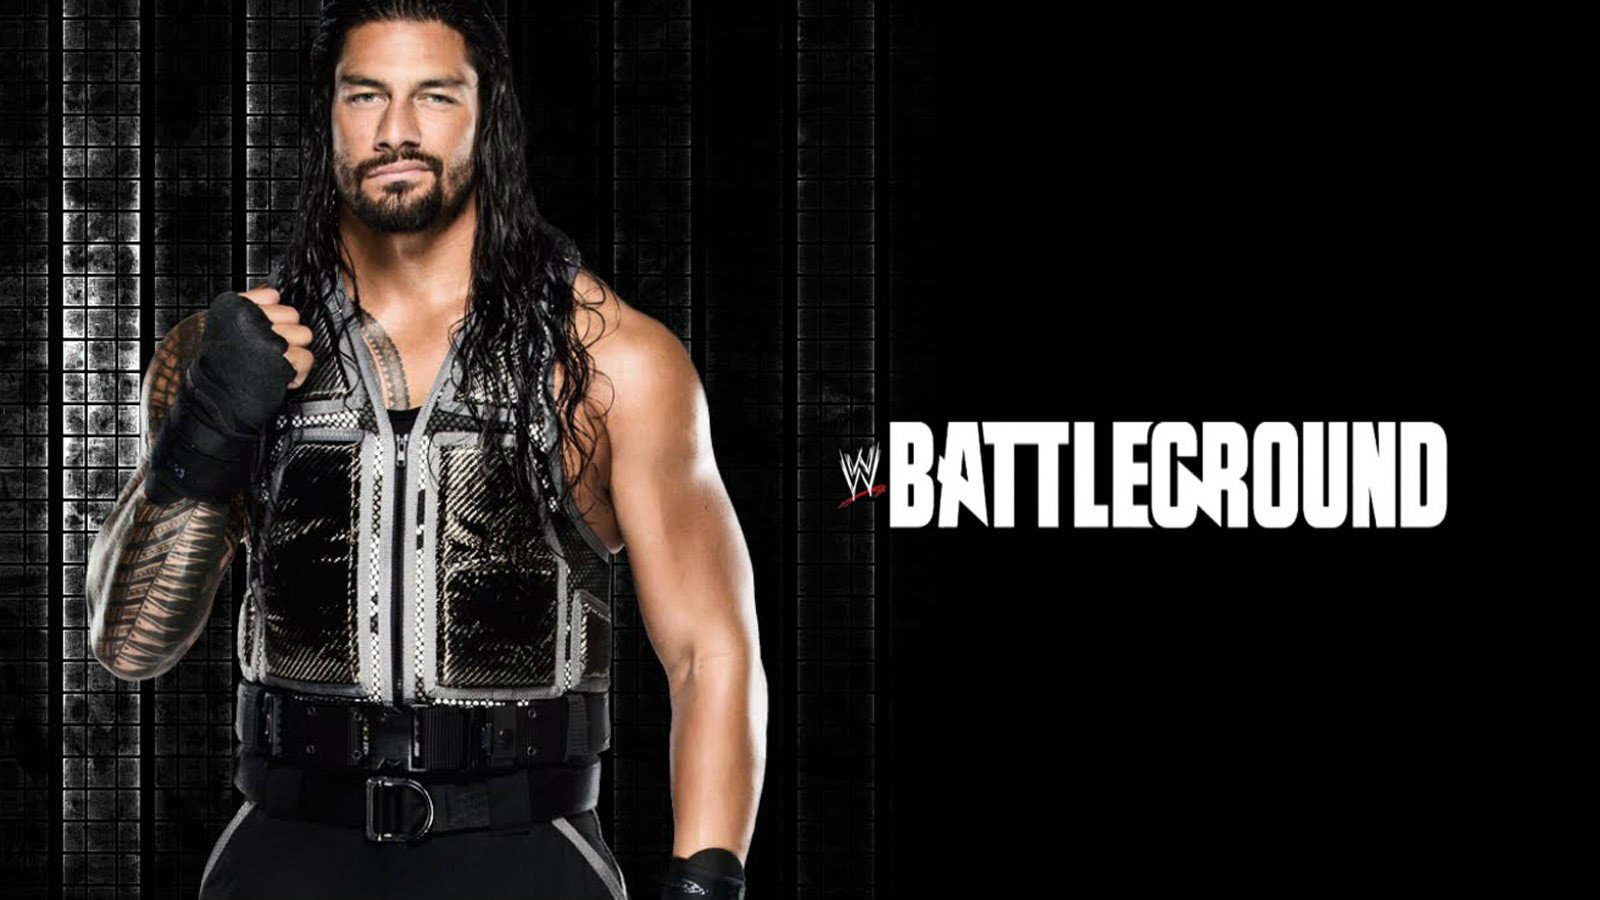 WWE Superstar Roman Reigns HD Wallpapers Most HD Wallpapers Pictures 1600x900